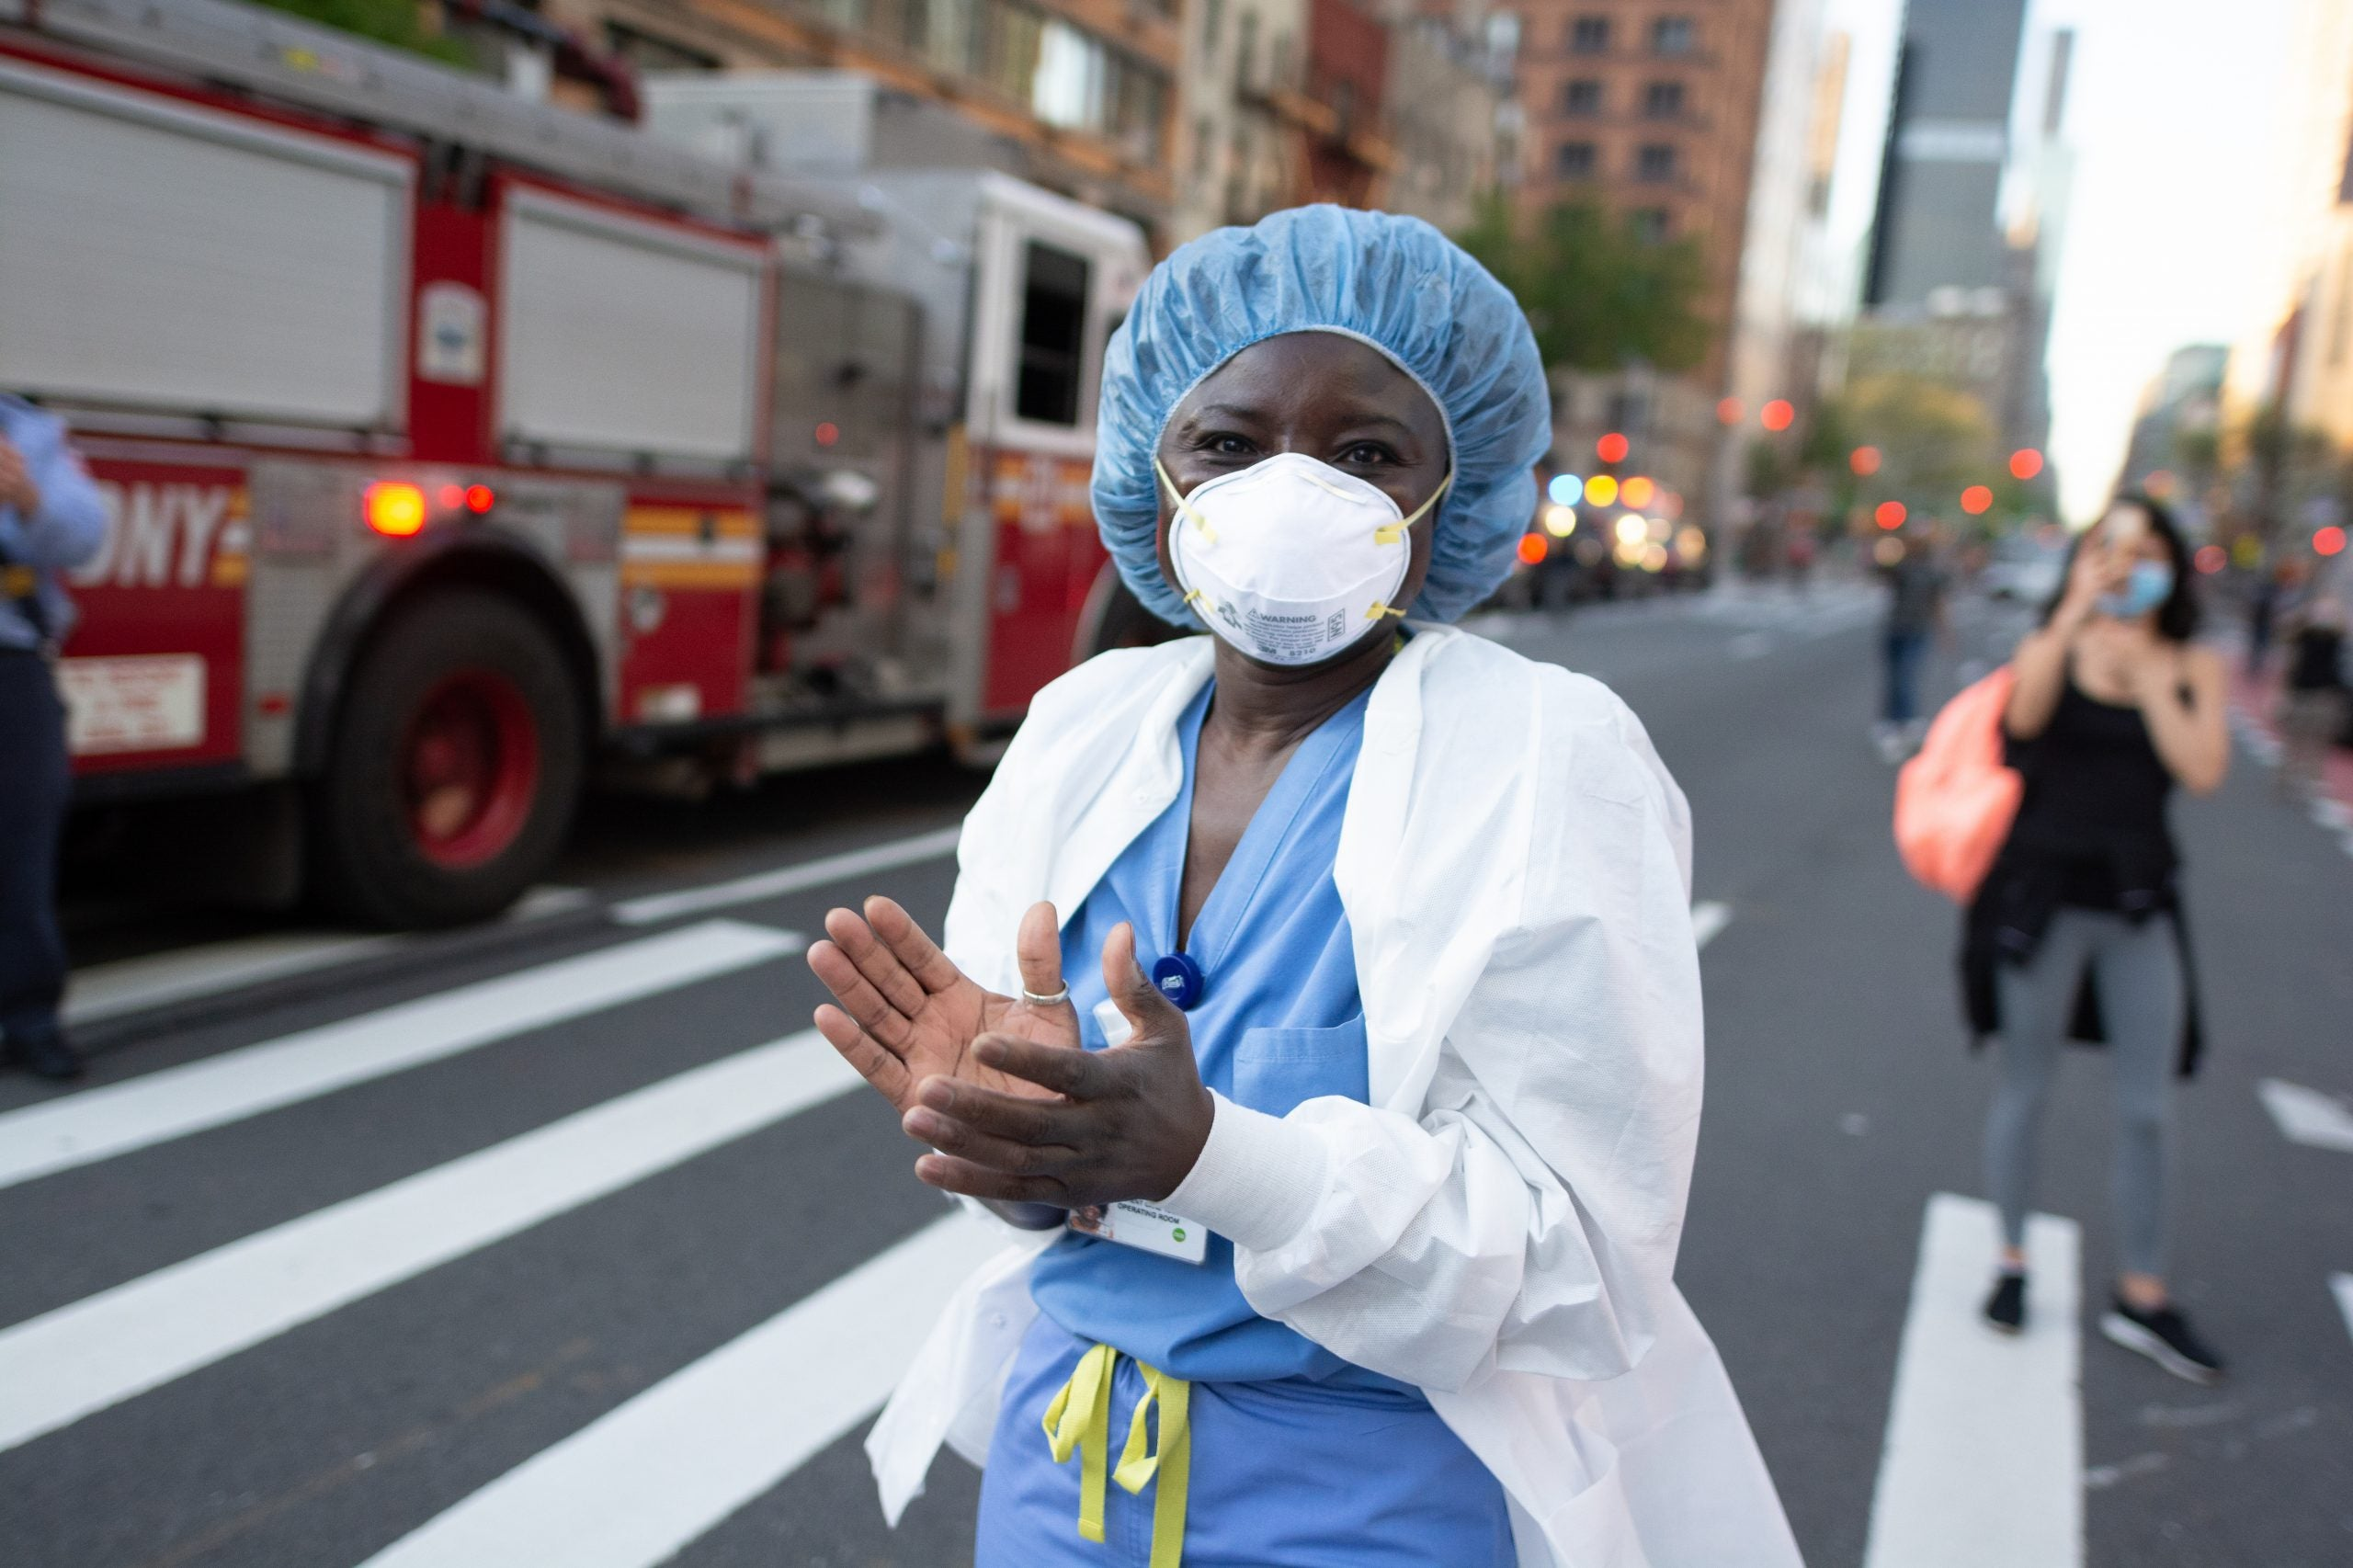 NEW YORK, UNITED STATES - 2020/05/03: A medical worker applauds along with the crowd outside the NYU Langone Medical Center in Manhattan amid the coronavirus pandemic. New York City continues to see a decrease in hospitalizations, a sign that confinement and social distancing measures have been effective. (Photo by Braulio Jatar/SOPA Images/LightRocket via Getty Images)